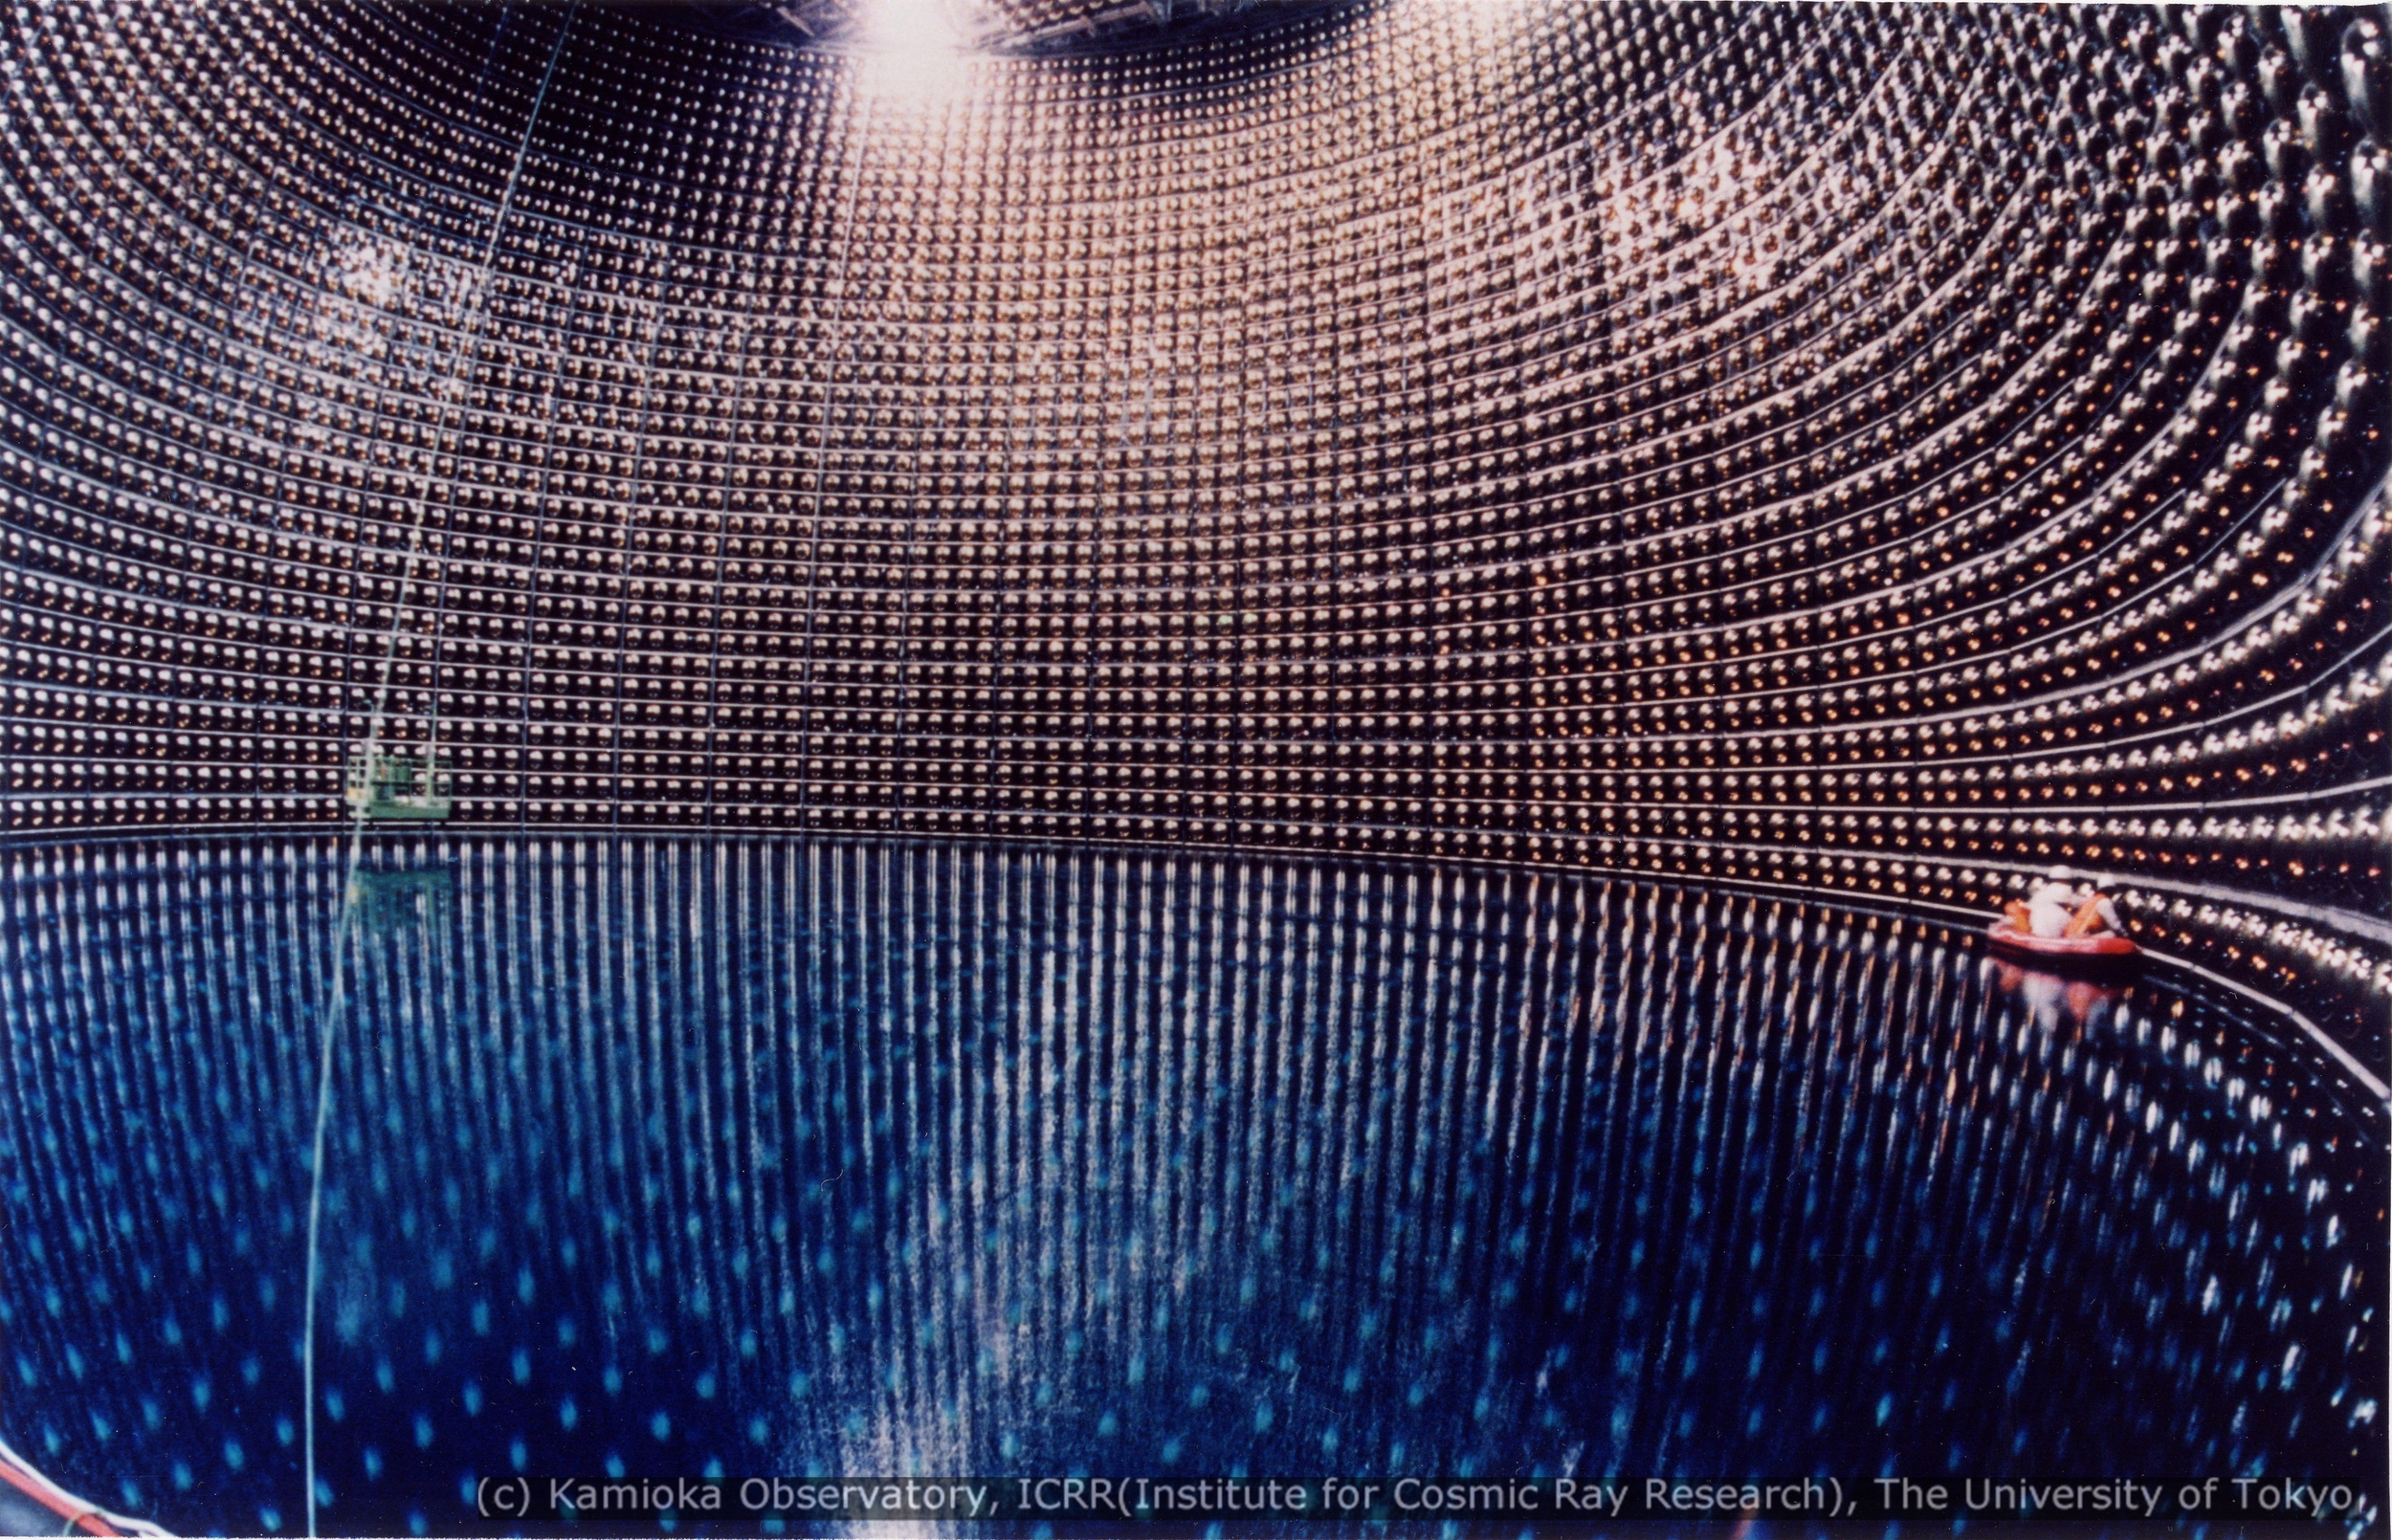 Super-Kamiokande (the follow-up experiment to Kamiokande) being filled with water in 1996, with technicians cleaning the photomultiplier detectors